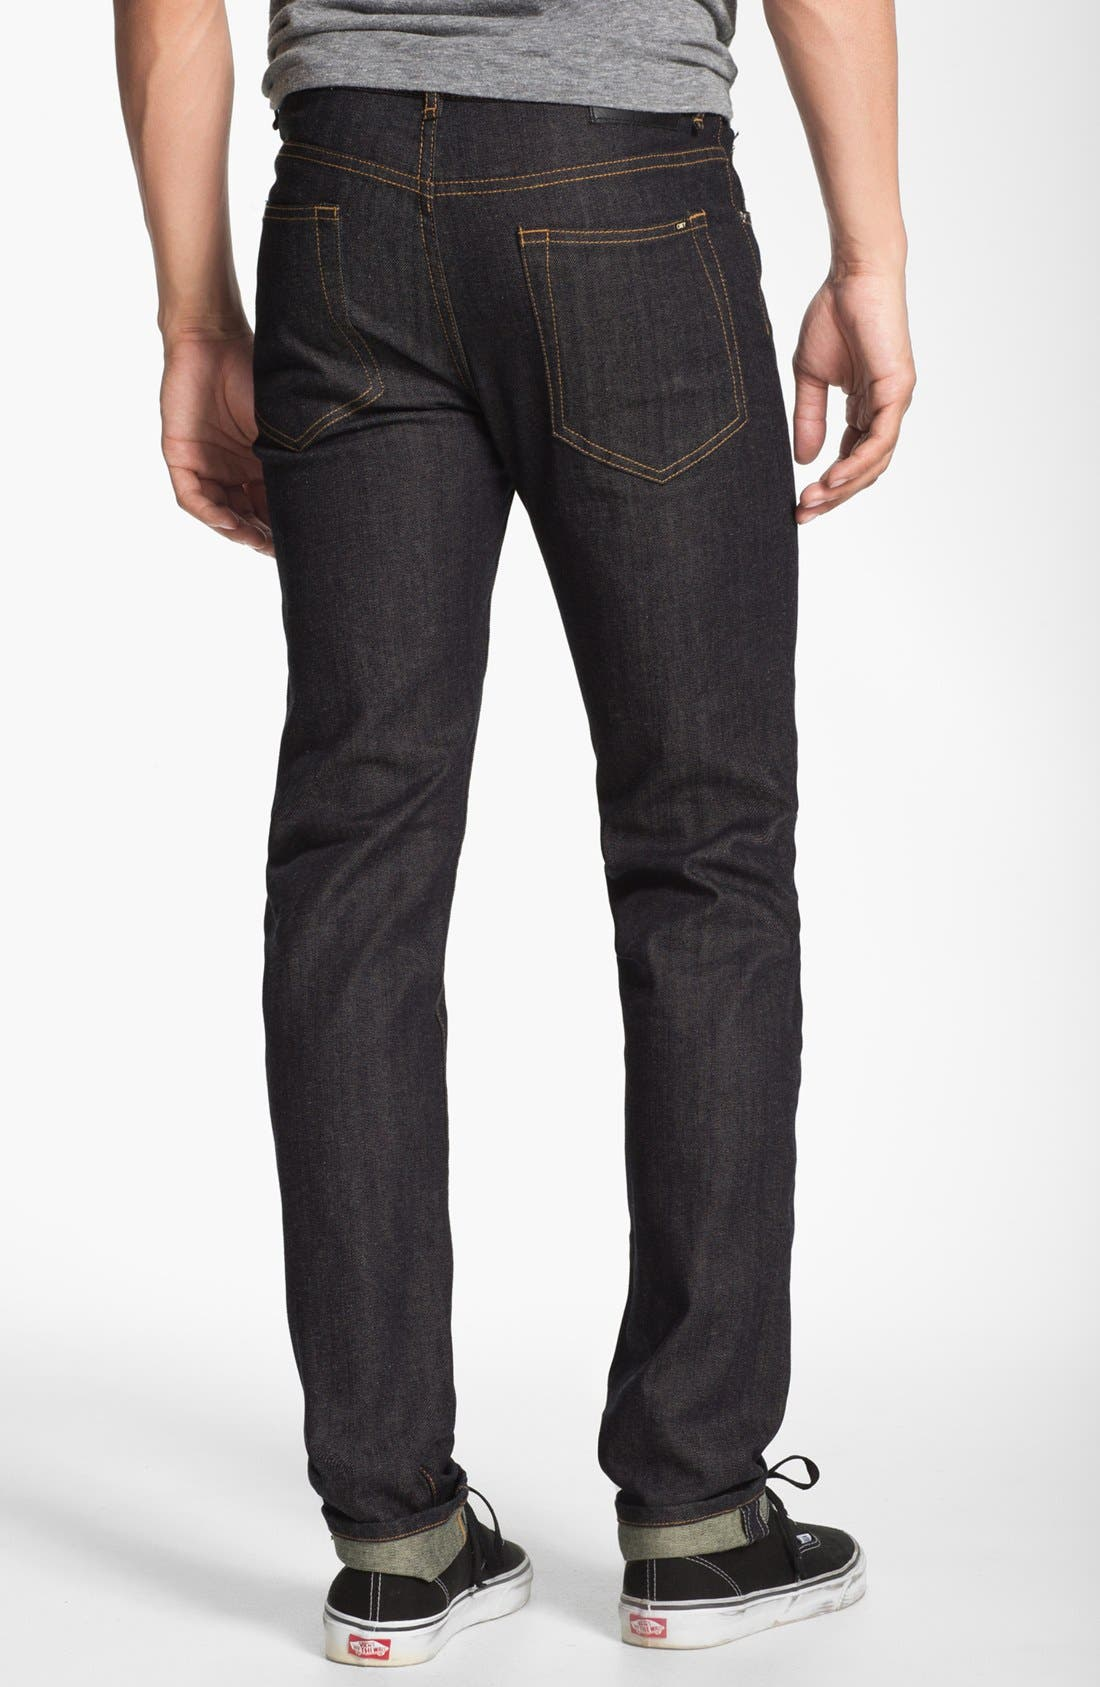 Alternate Image 1 Selected - Obey 'Juvee' Slim Fit Selvedge Jeans (Raw Indigo)